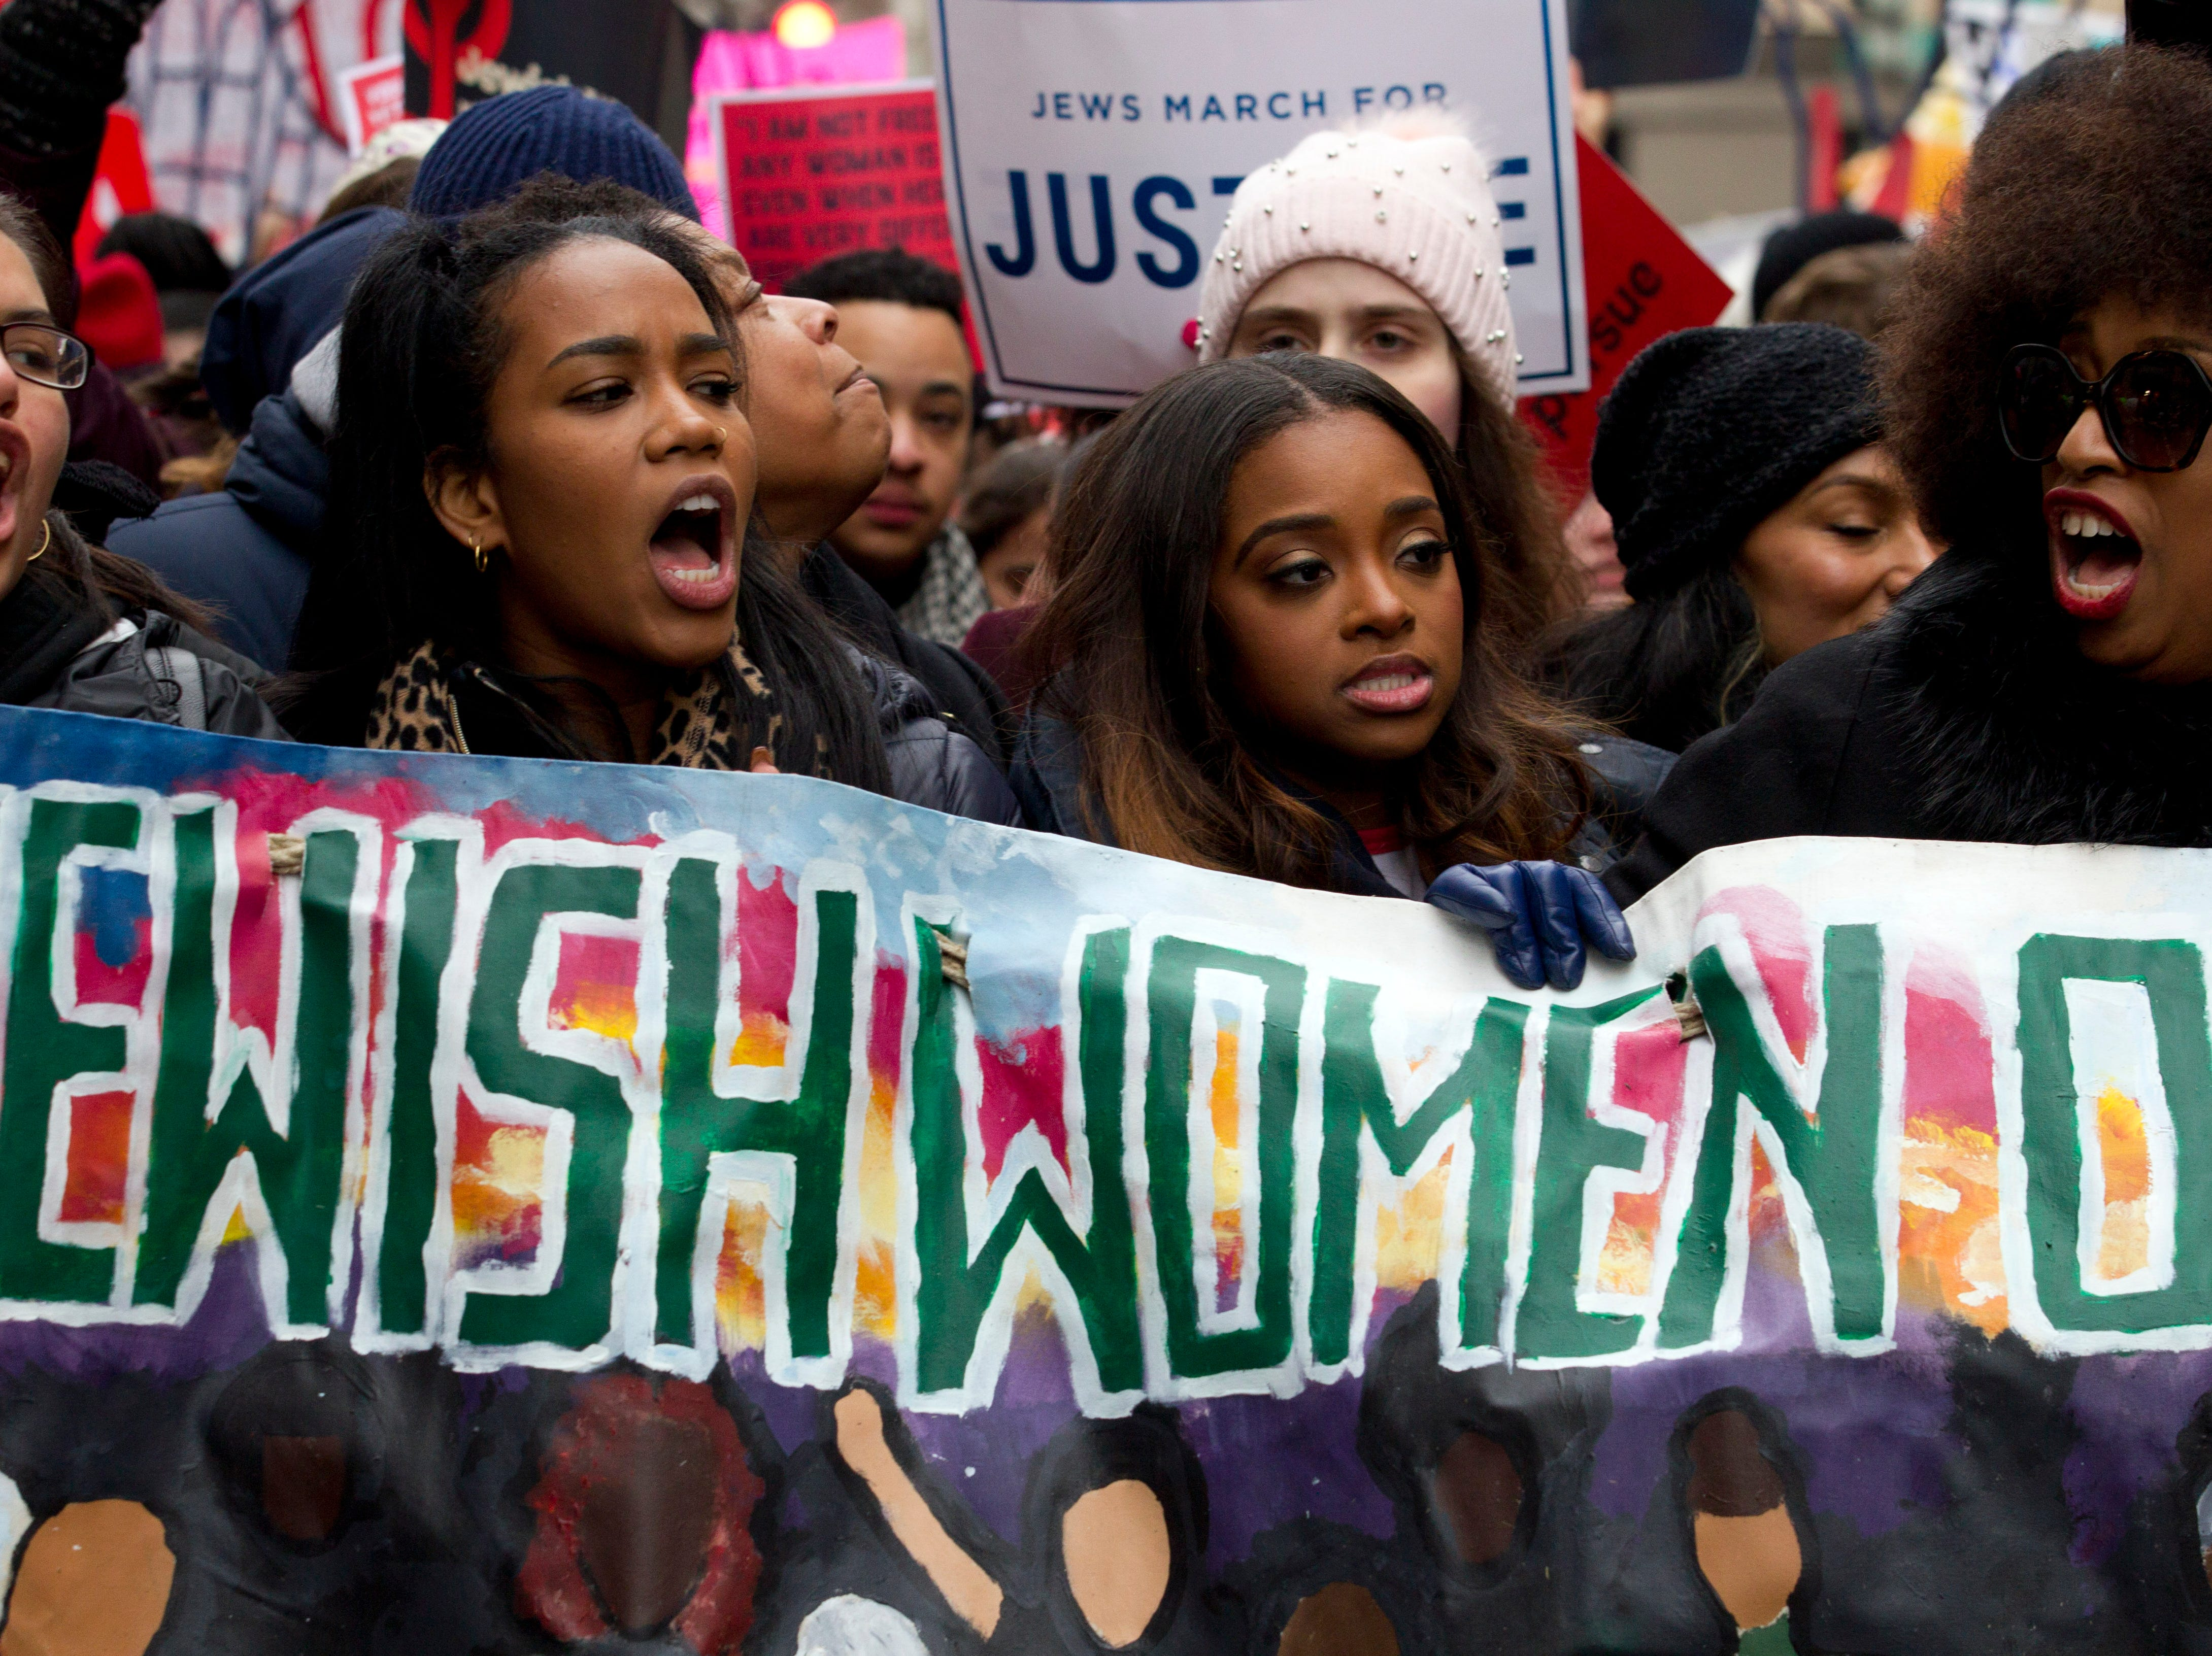 Co-president of the 2019 Women's March Tamika Mallory, center, joins other demonstrators on Pennsylvania Avenue during the Women's March in Washington on Saturday, Jan. 19, 2019.